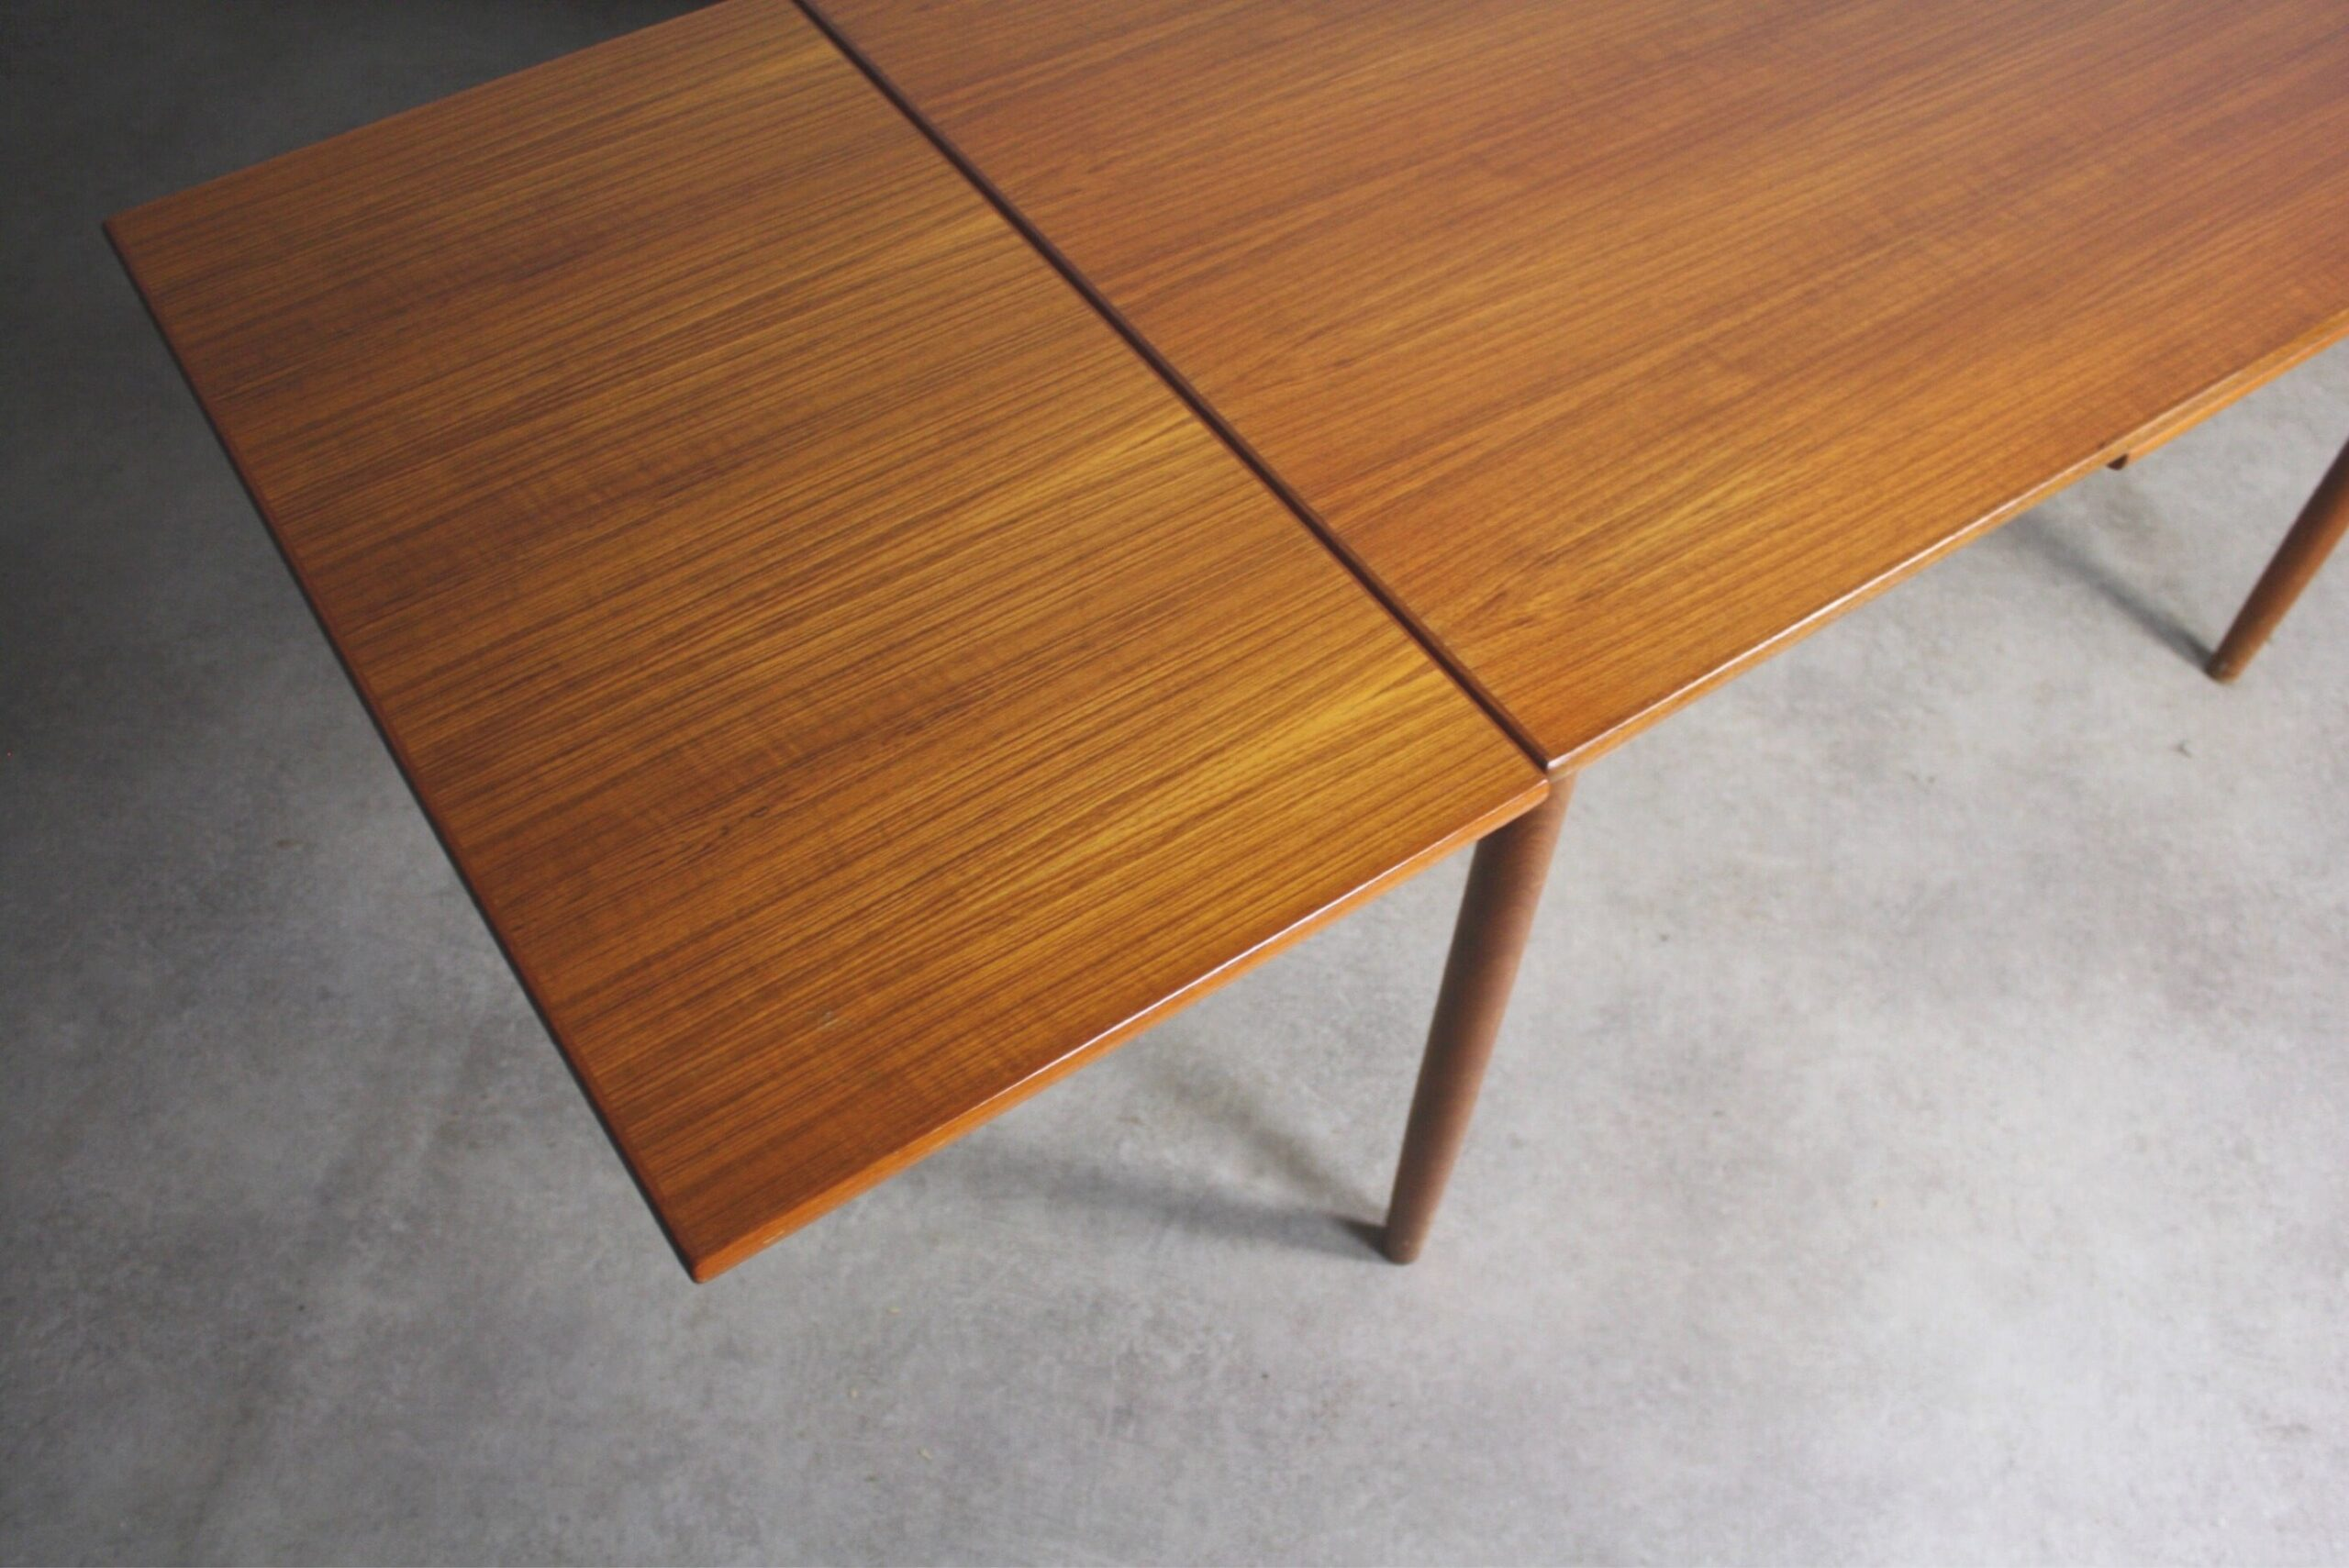 Mid Century Teak Extension Dining Table — Abt Modern with Mid Century Dining Table